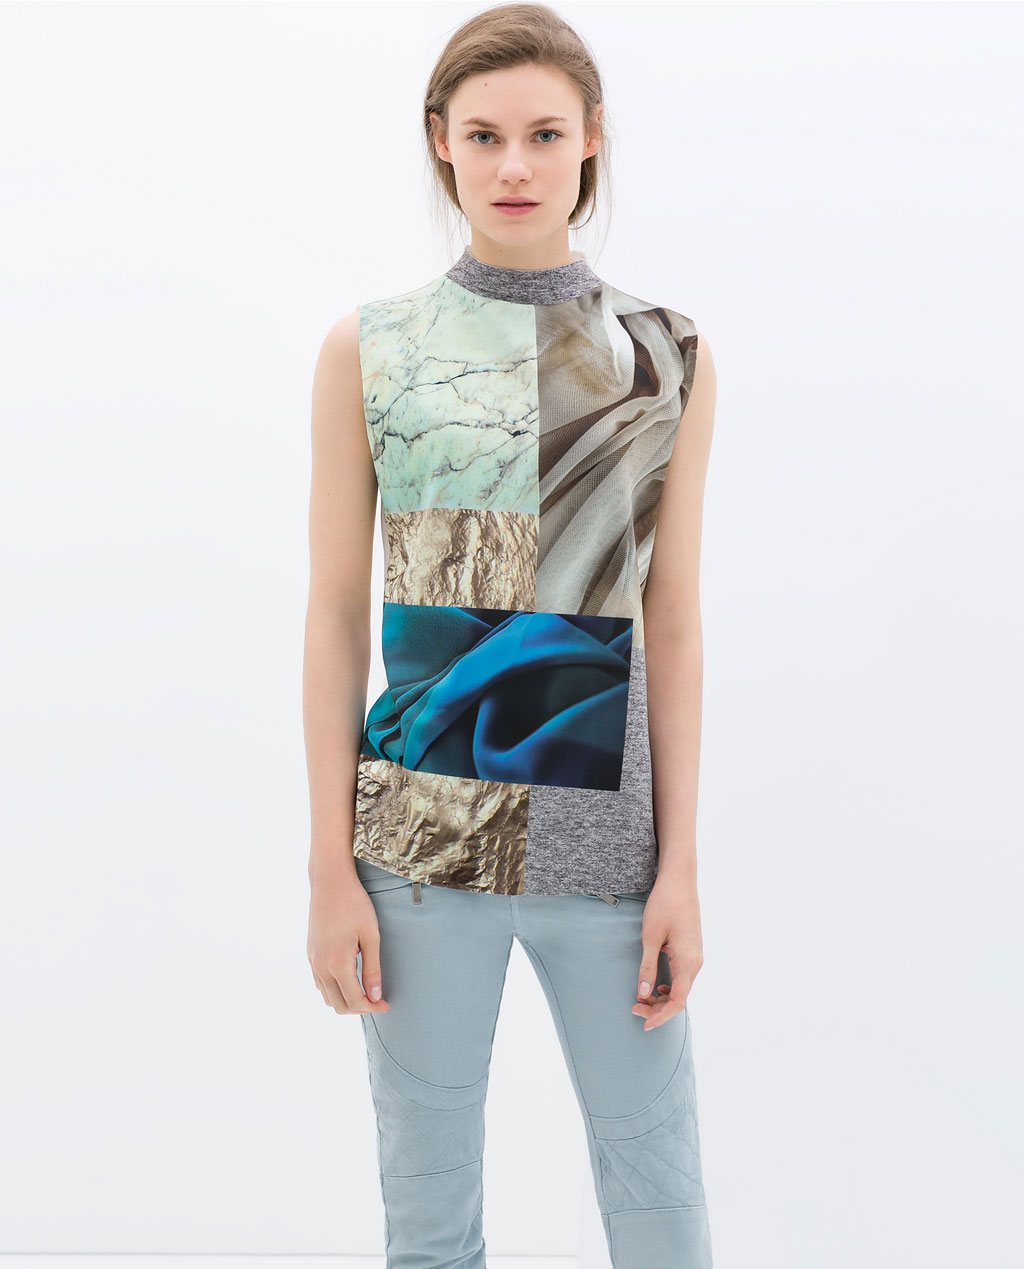 Zara Summer Spring T-Shirts Collection For Women